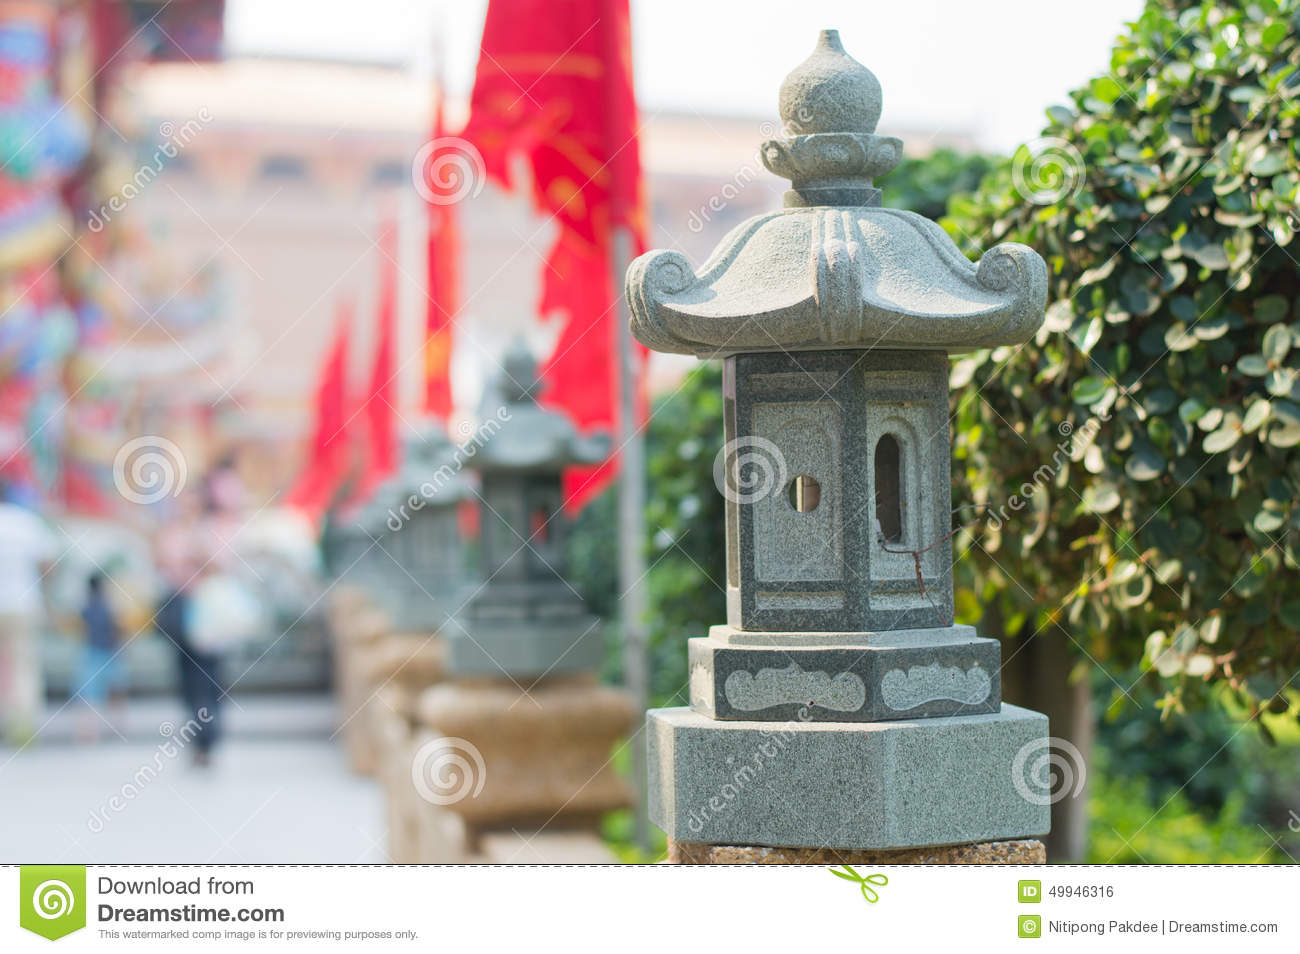 Stone Lamp Wallpapers And Backgrounds Stock Photo - Image of ... for Temple Stone Lamp  143gtk